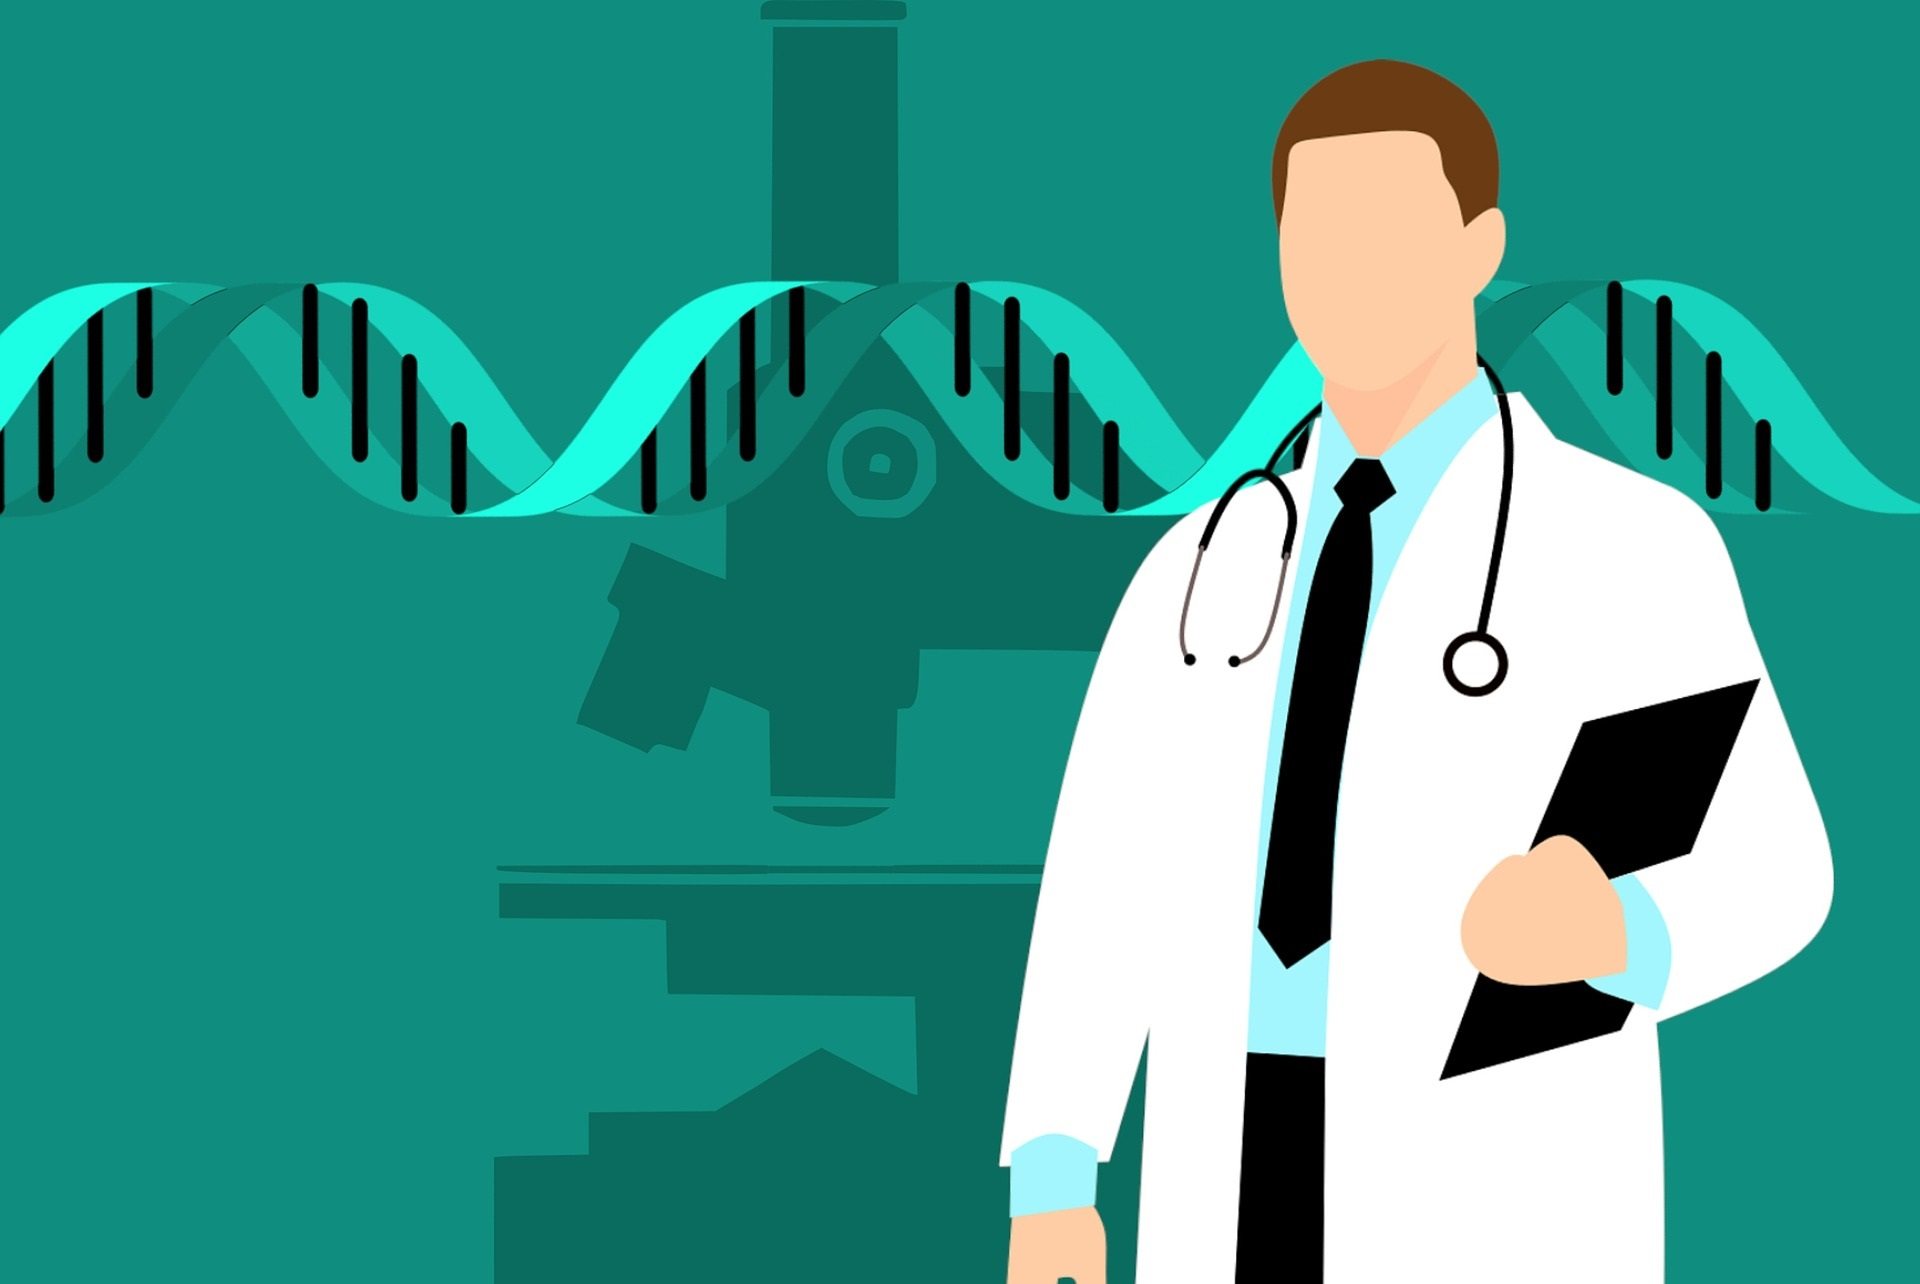 The majority of people would support genome editing in the context of curing diseases -